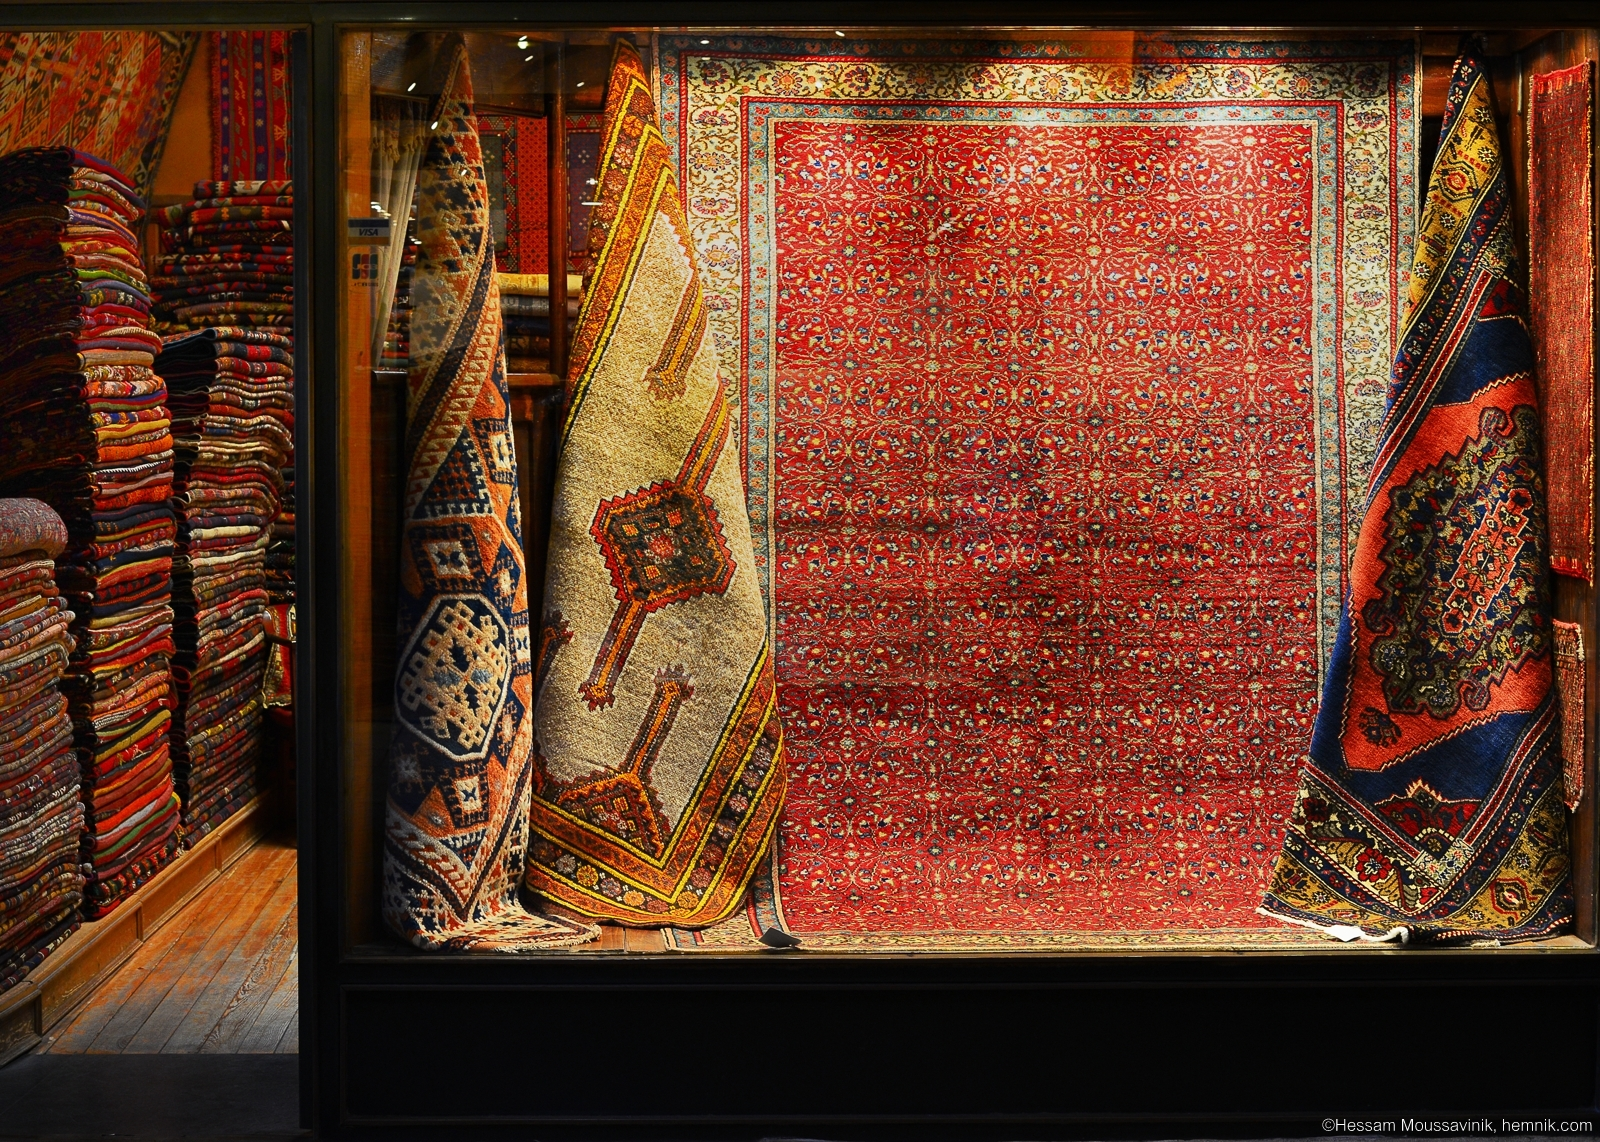 Photo of a carpet shop window in Grand bazaar of Istanbul